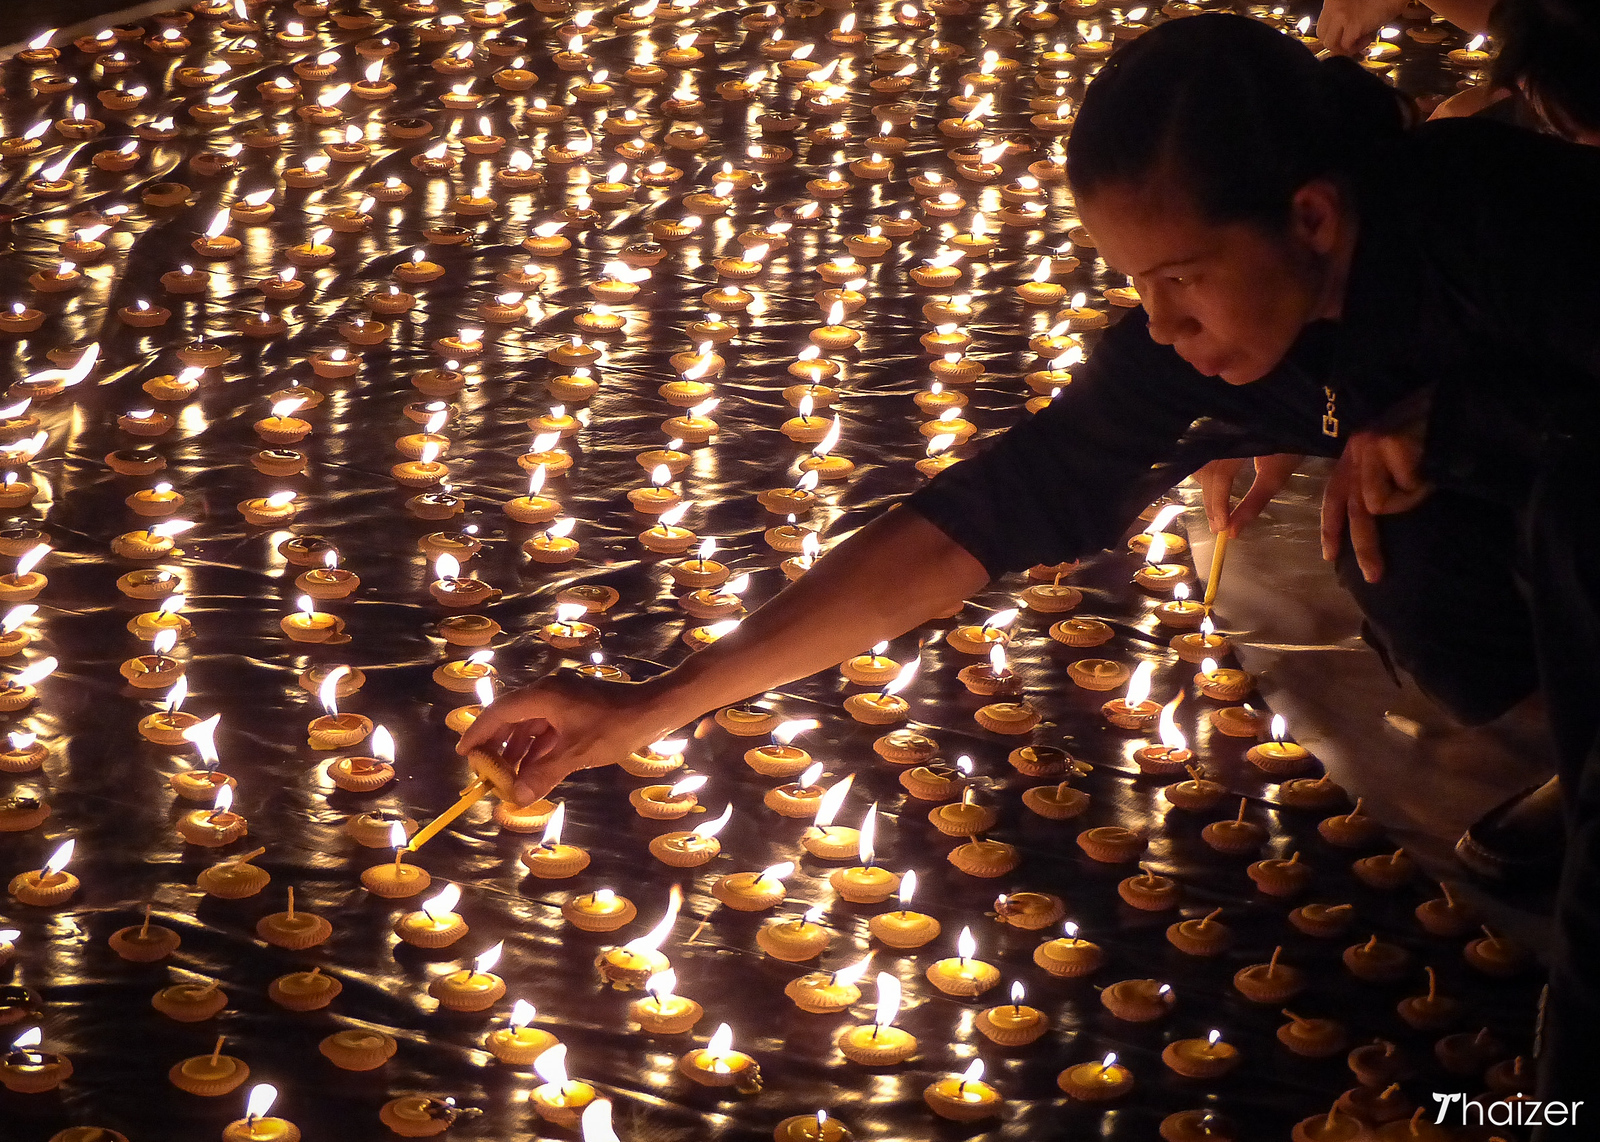 candlelit ceremony in Chiang Mai for the King